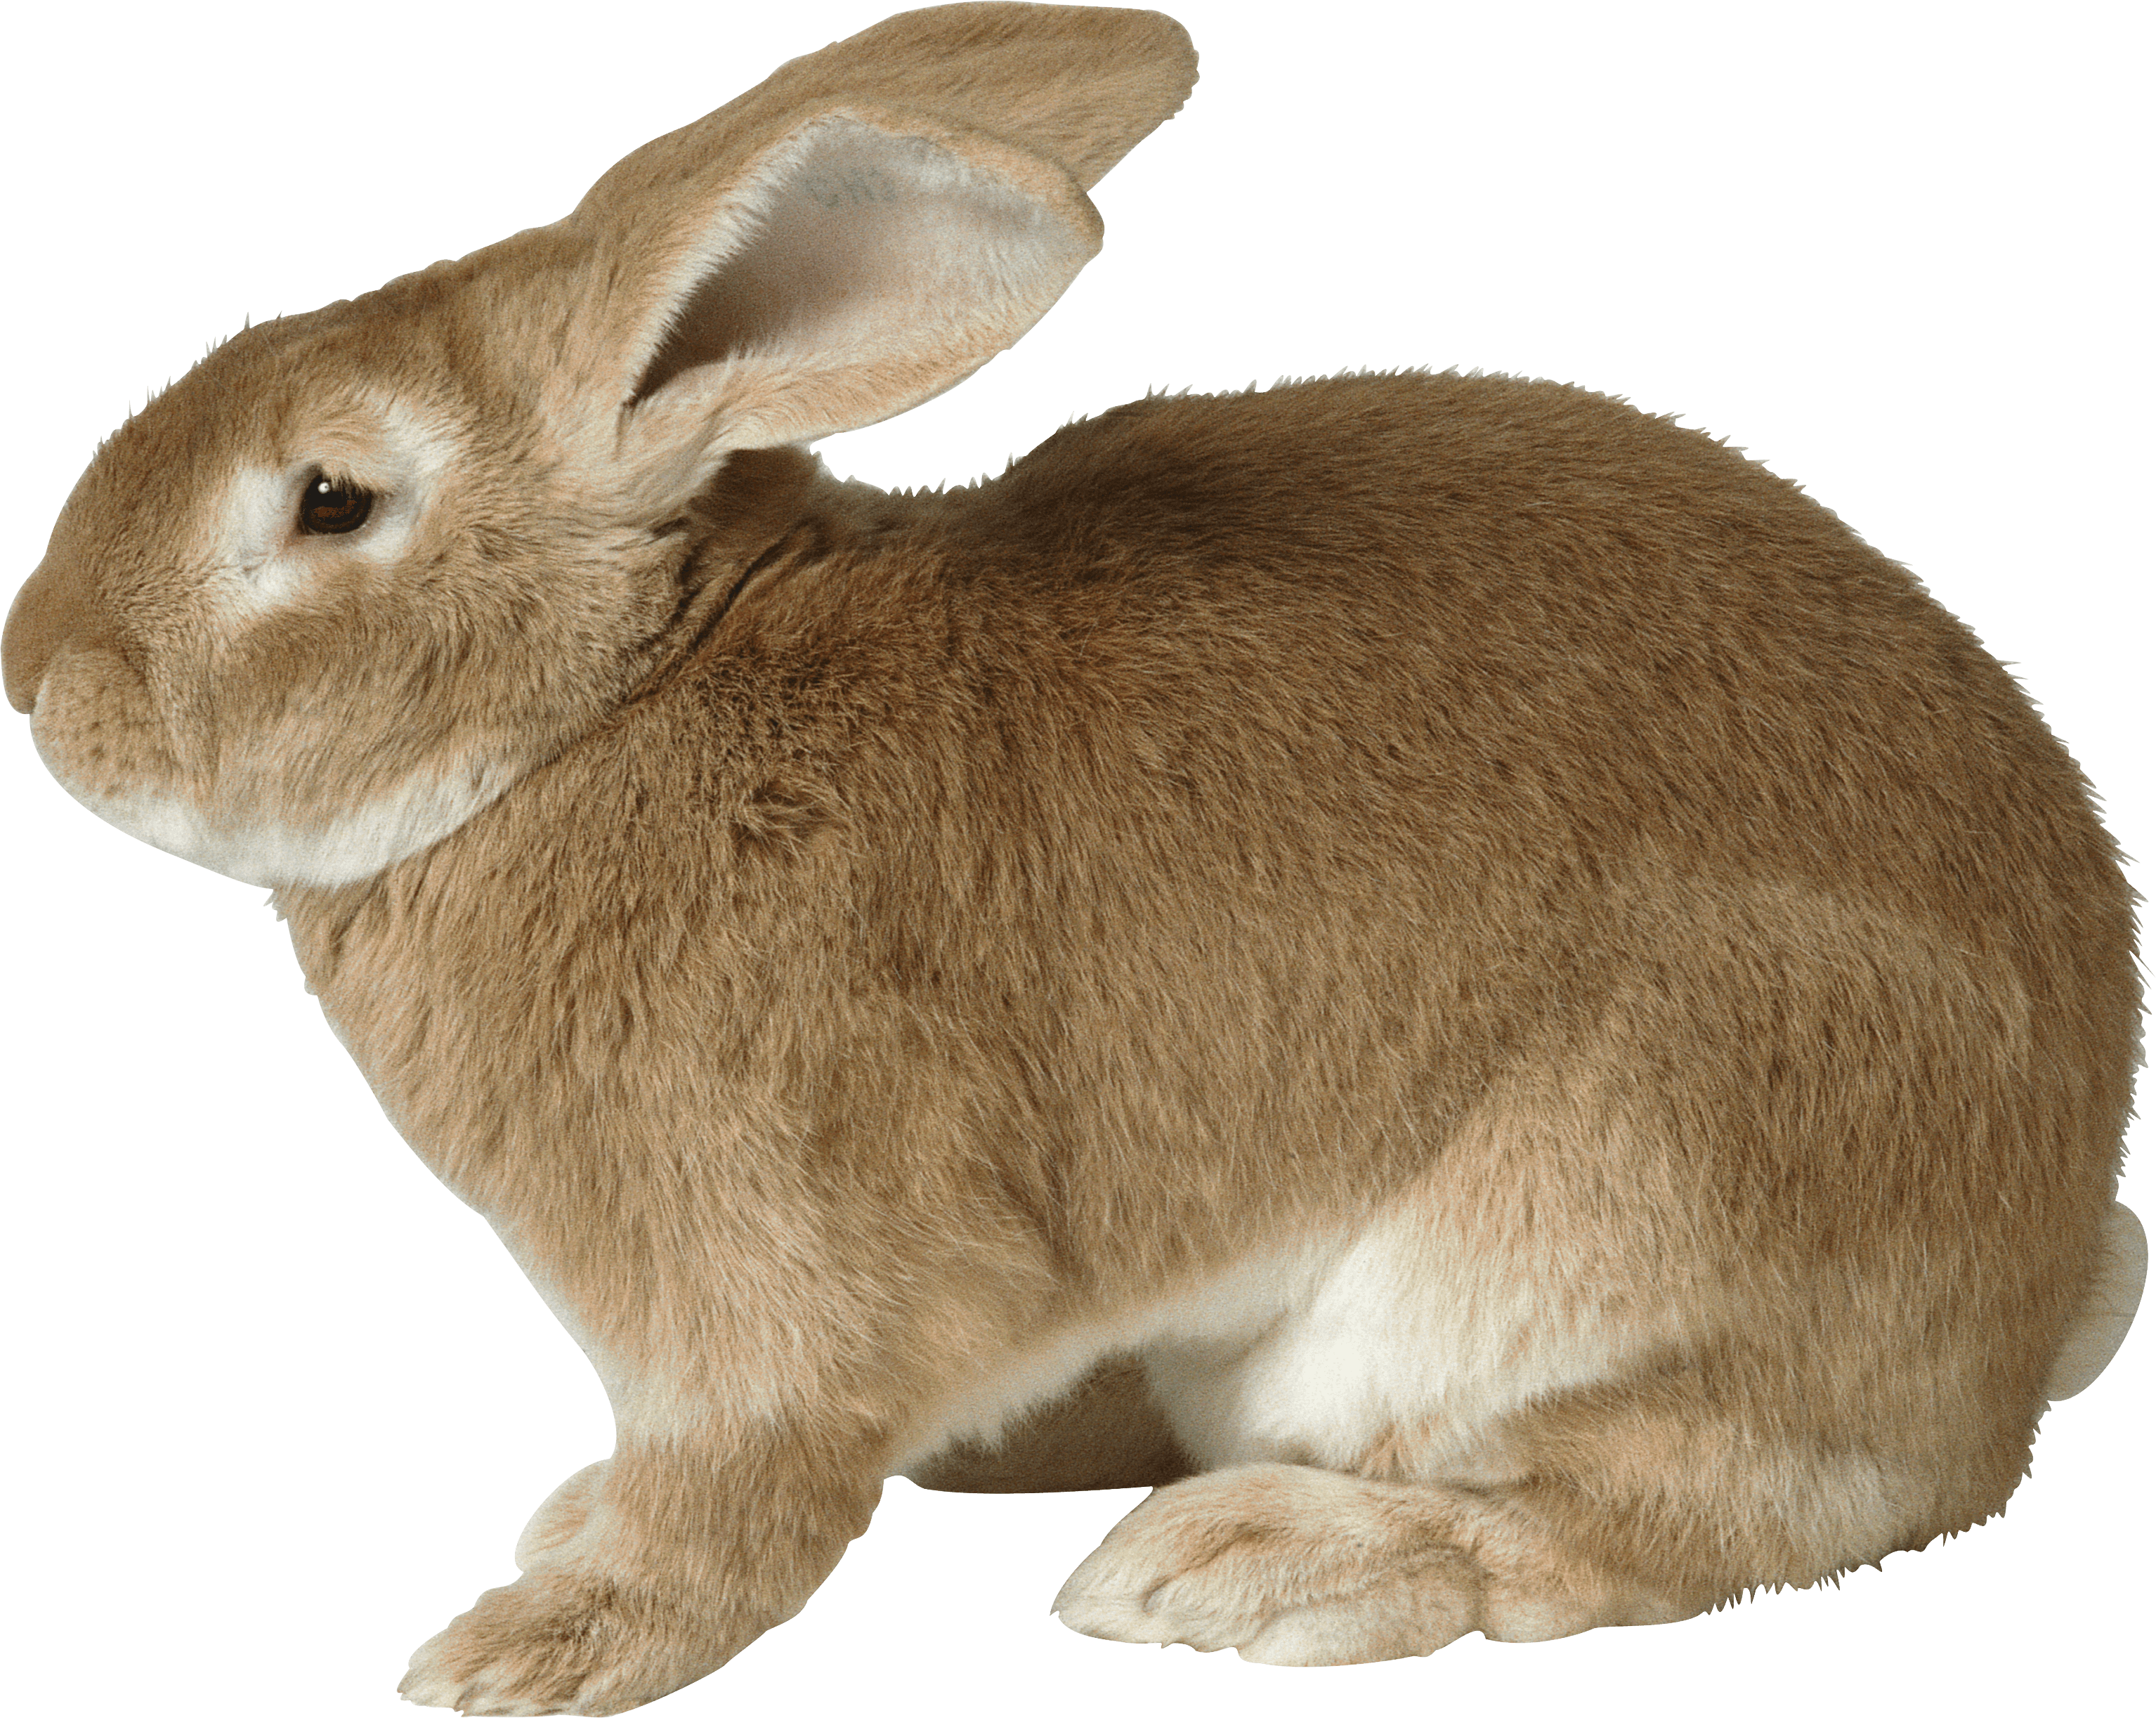 sad brown rabbit PNG Image.